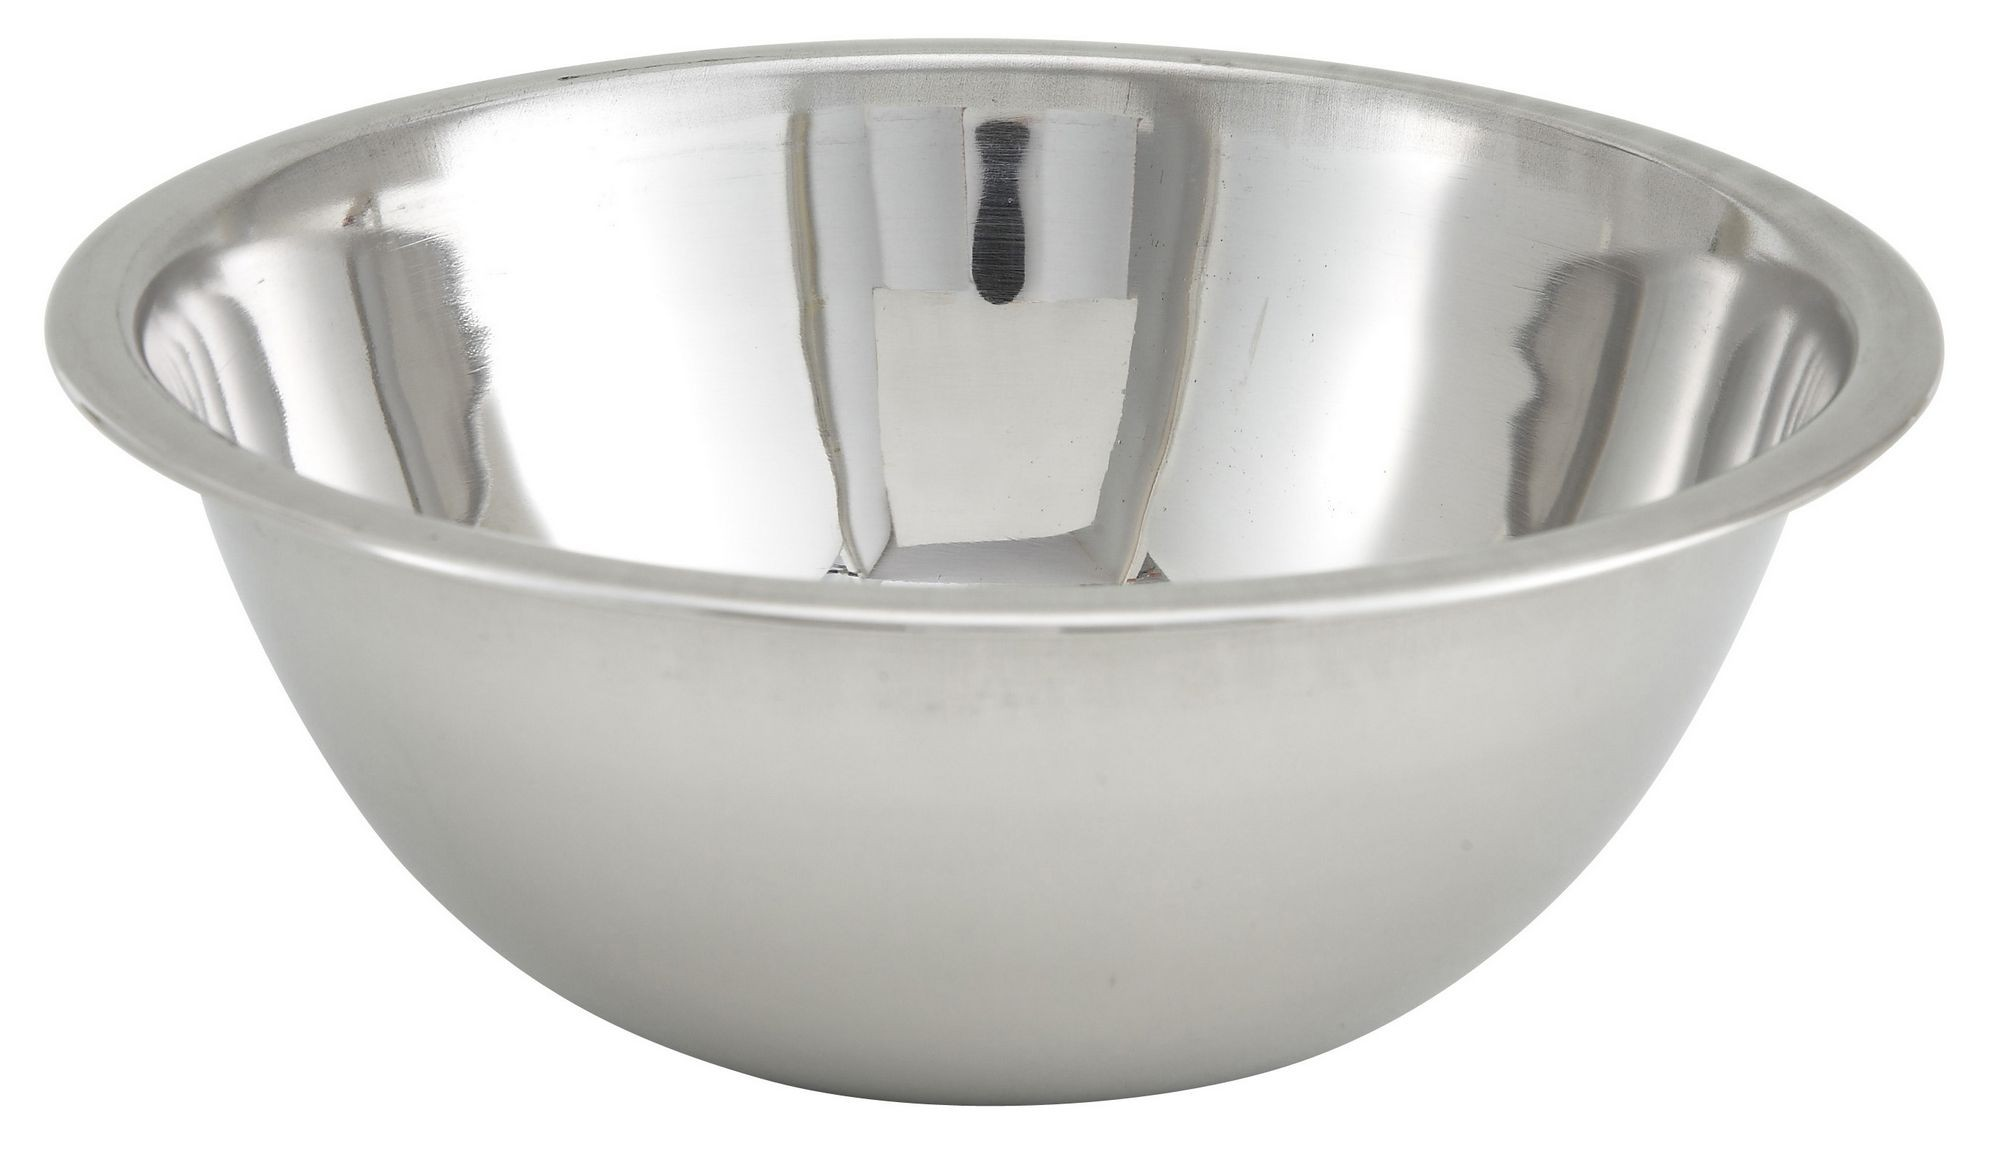 Winco MXBT-75Q Stainless Steel All-Purpose Mixing Bowl 3/4 Qt.